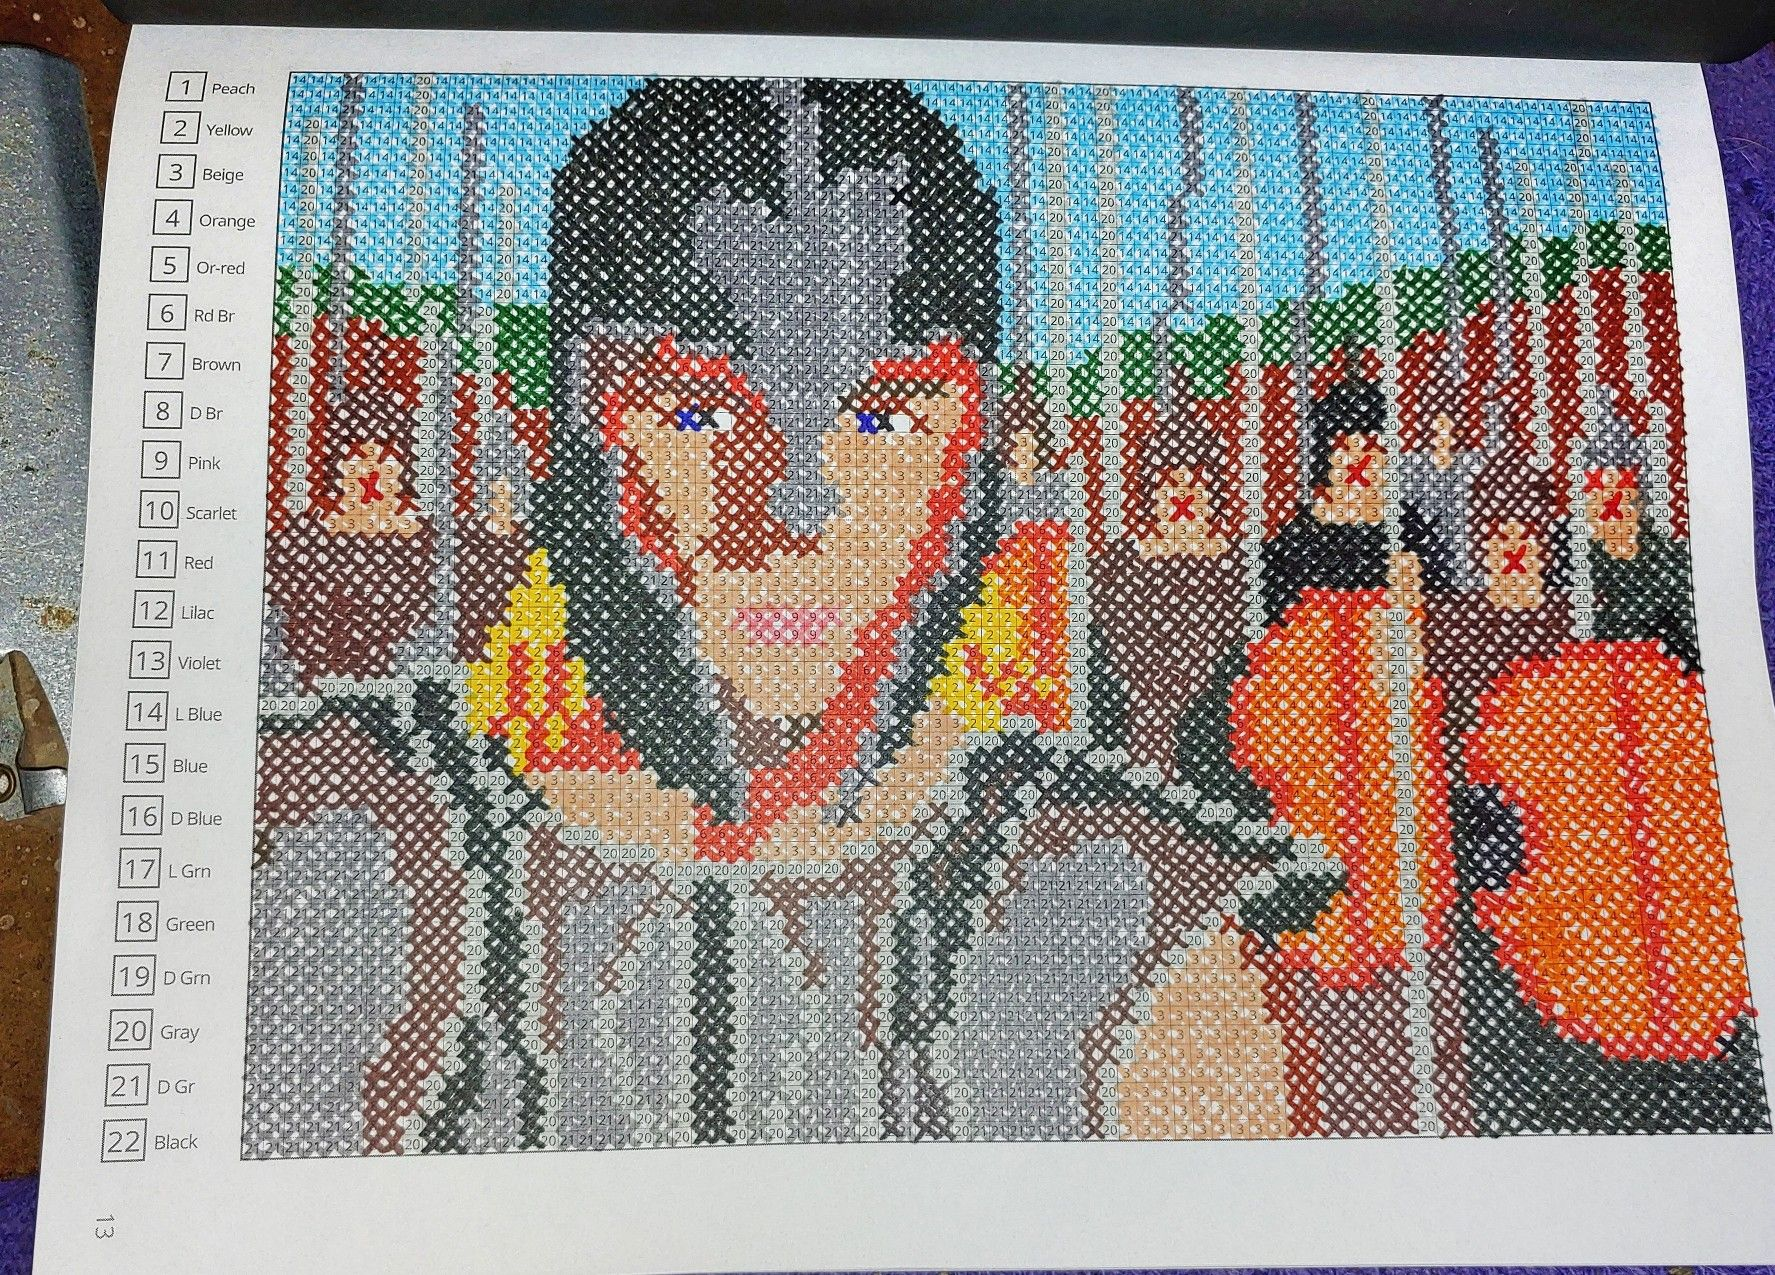 Book Mystery Mosaics Cinema Guess The Movie Belba Family X Method Colored Using Various Markers April 17 2020 T Guess The Movie Family Books Coloring Books